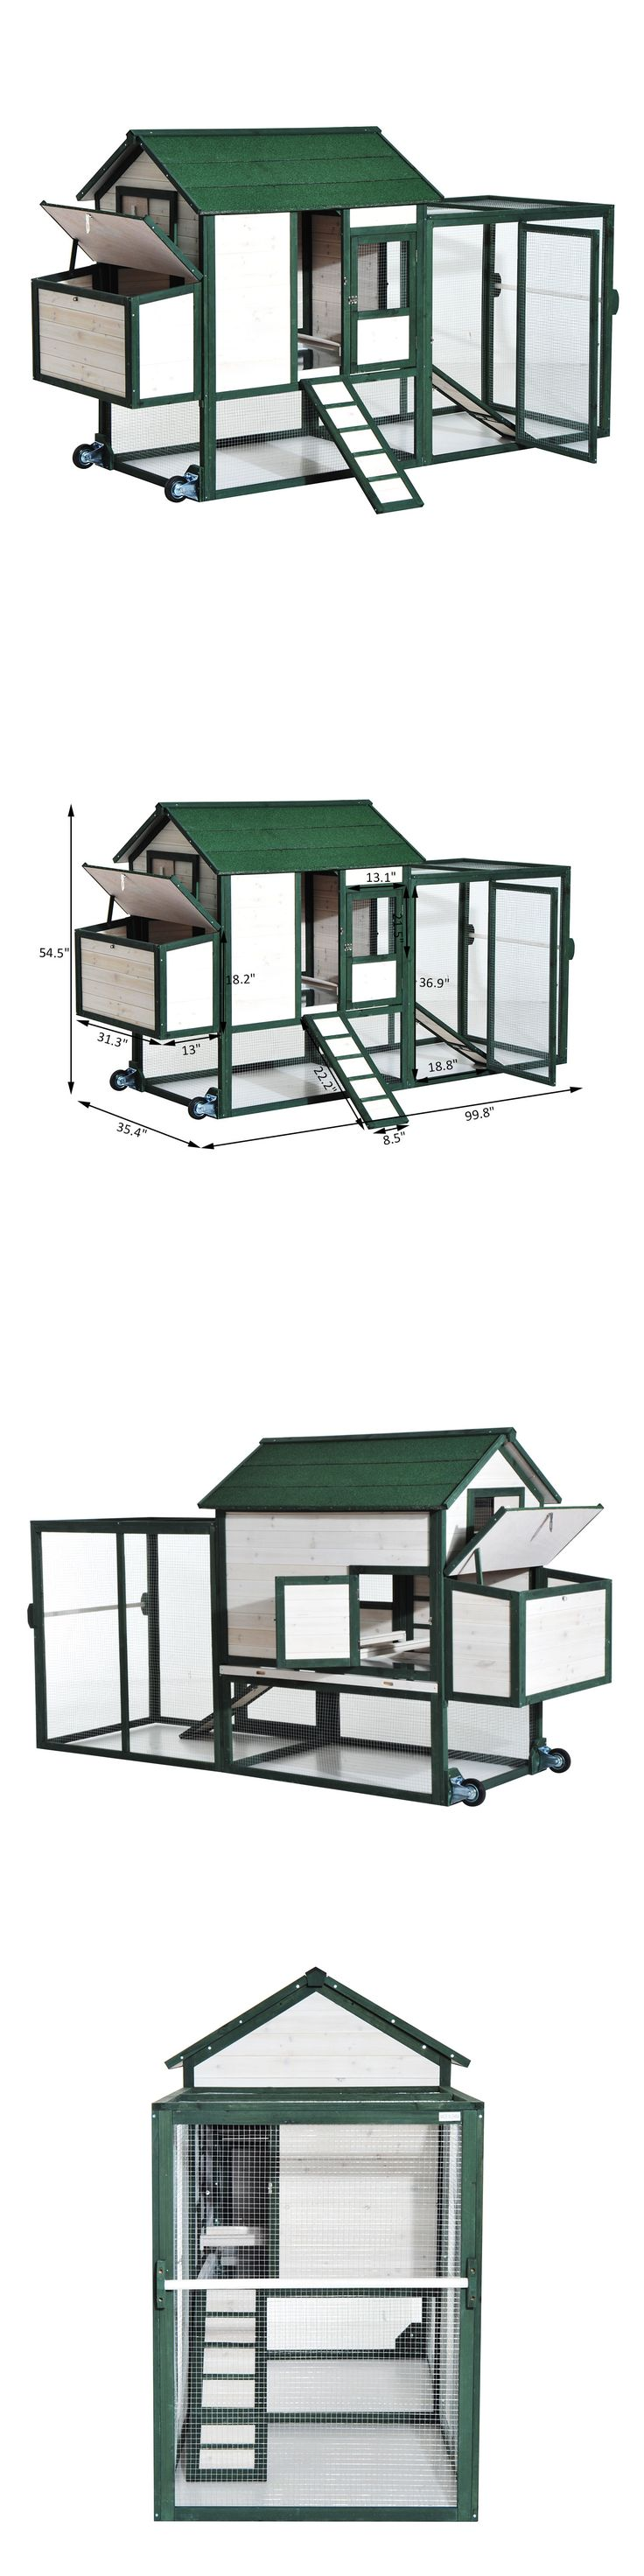 Backyard Poultry Supplies 177801: 100 Wooden Chicken Coop Hen House Wheels Portable Pet Poultry Houses Nest Box BUY IT NOW ONLY: $349.99